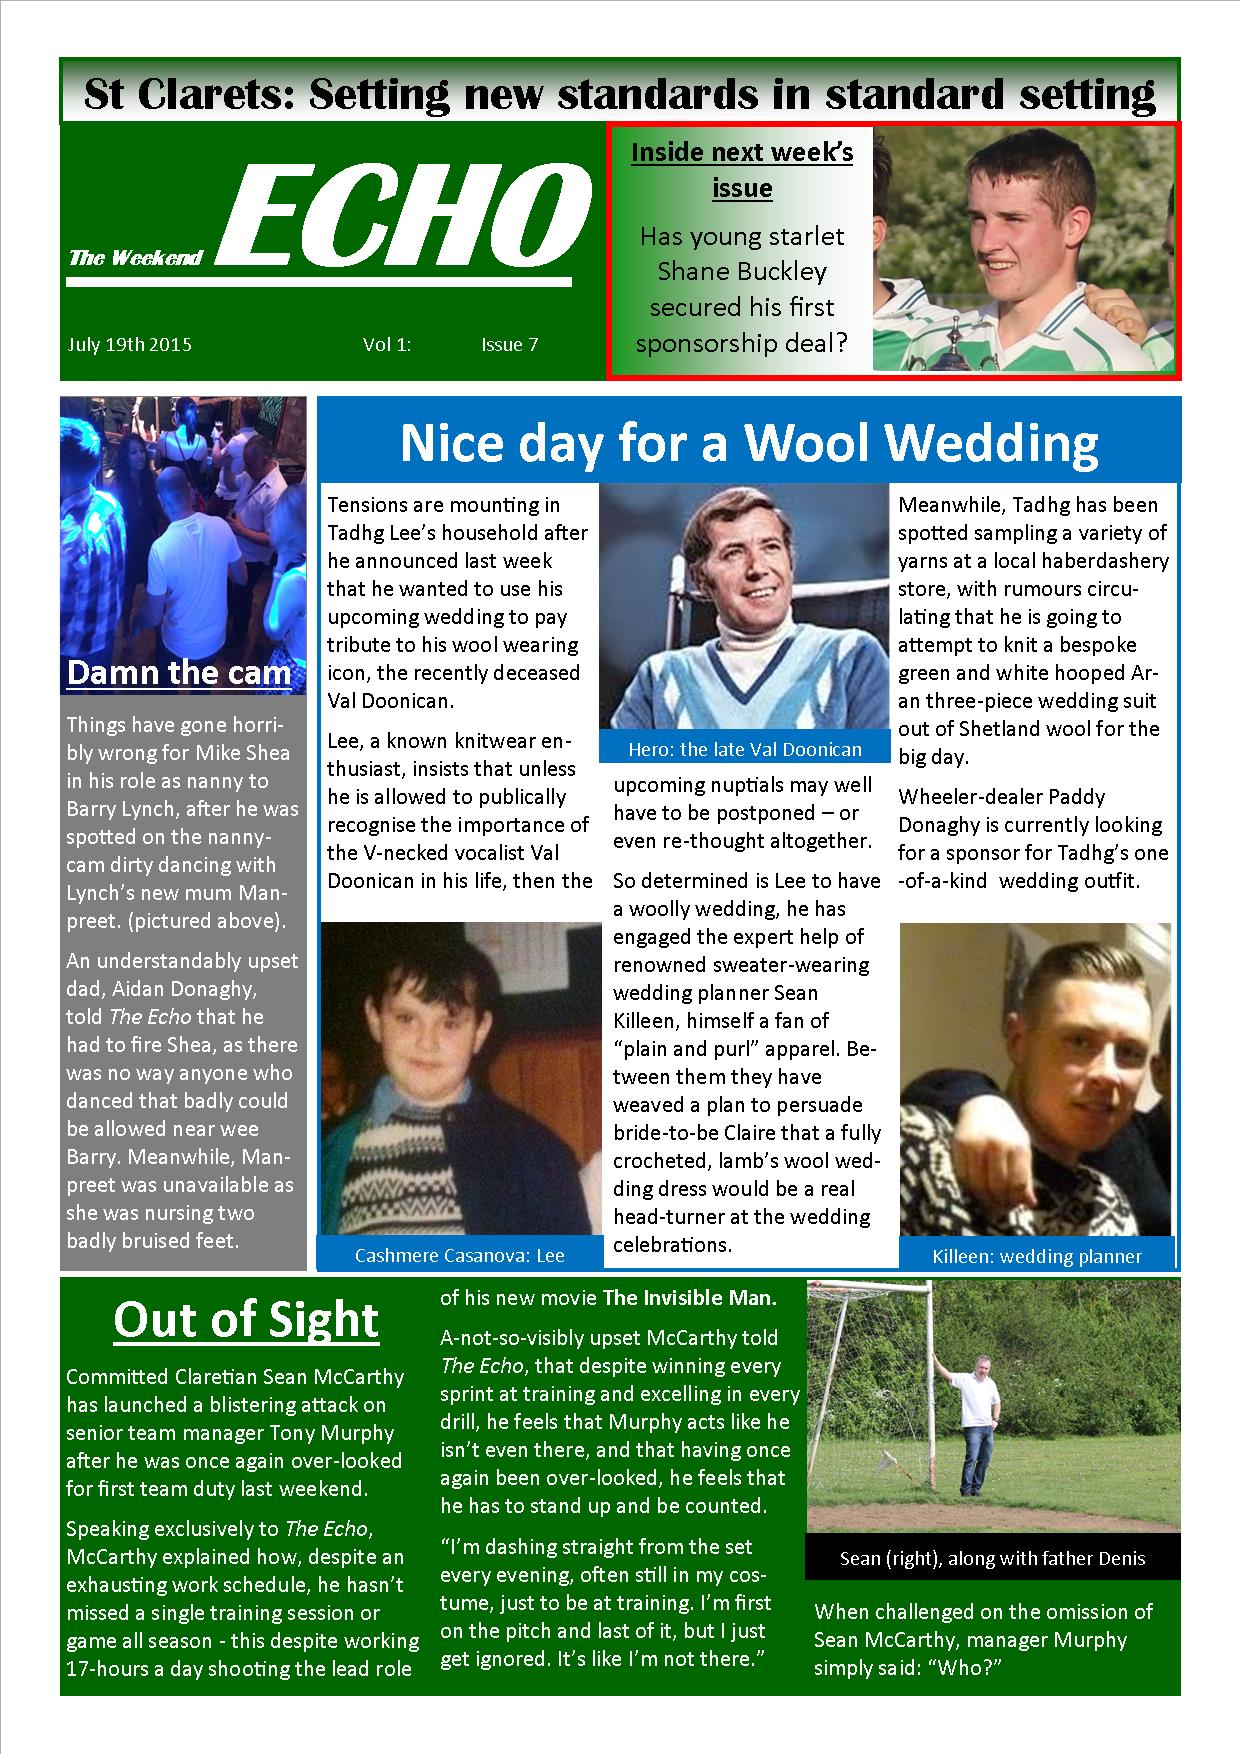 Weekend Echo Issue 7. The weekly newsletter from St Clarets GFC in London. London's best GAA club. A Gaelic football club to be proud of.